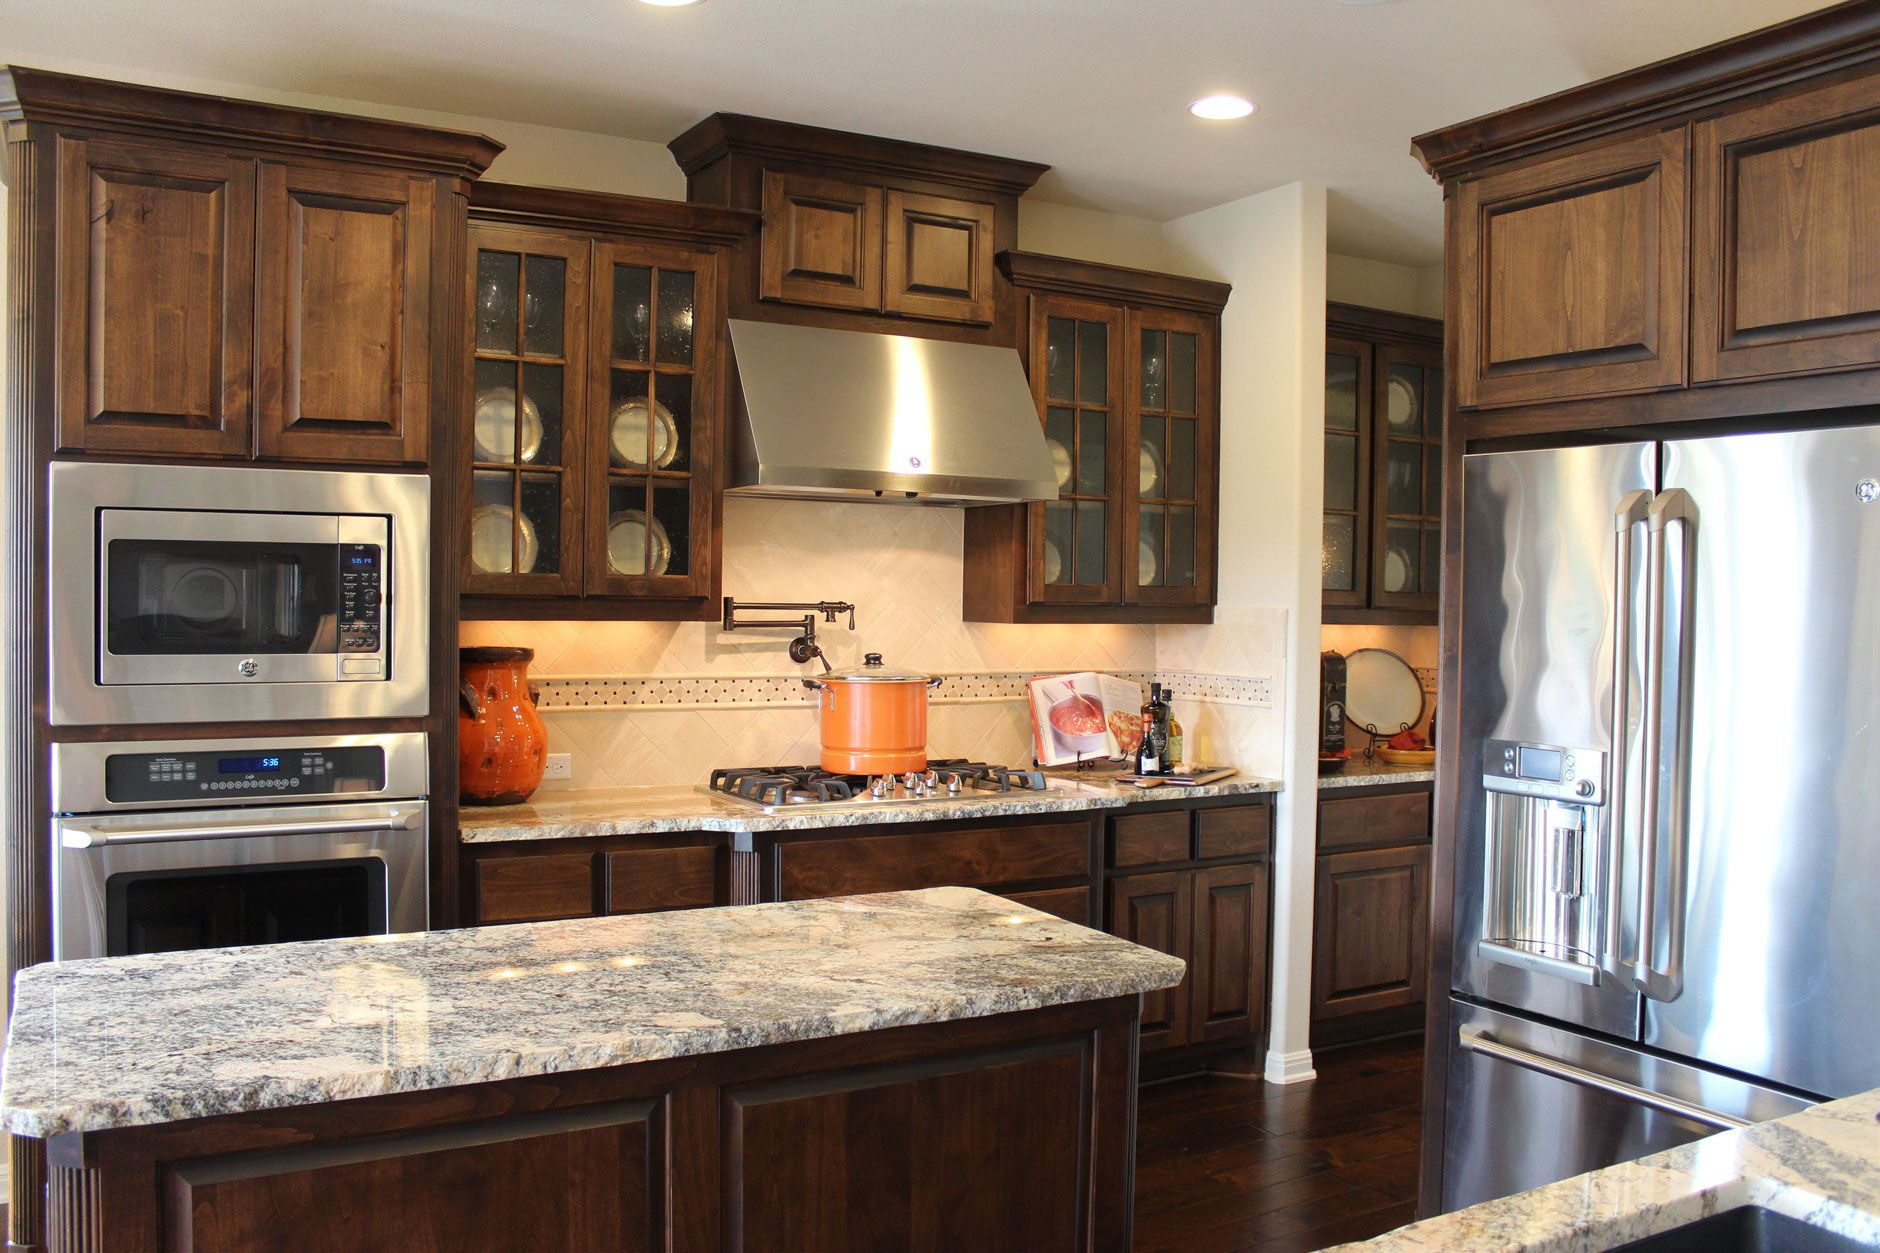 Kitchen Cabinets Knotty Alder burrows cabinets kitchen in stained knotty alder and mullion doors